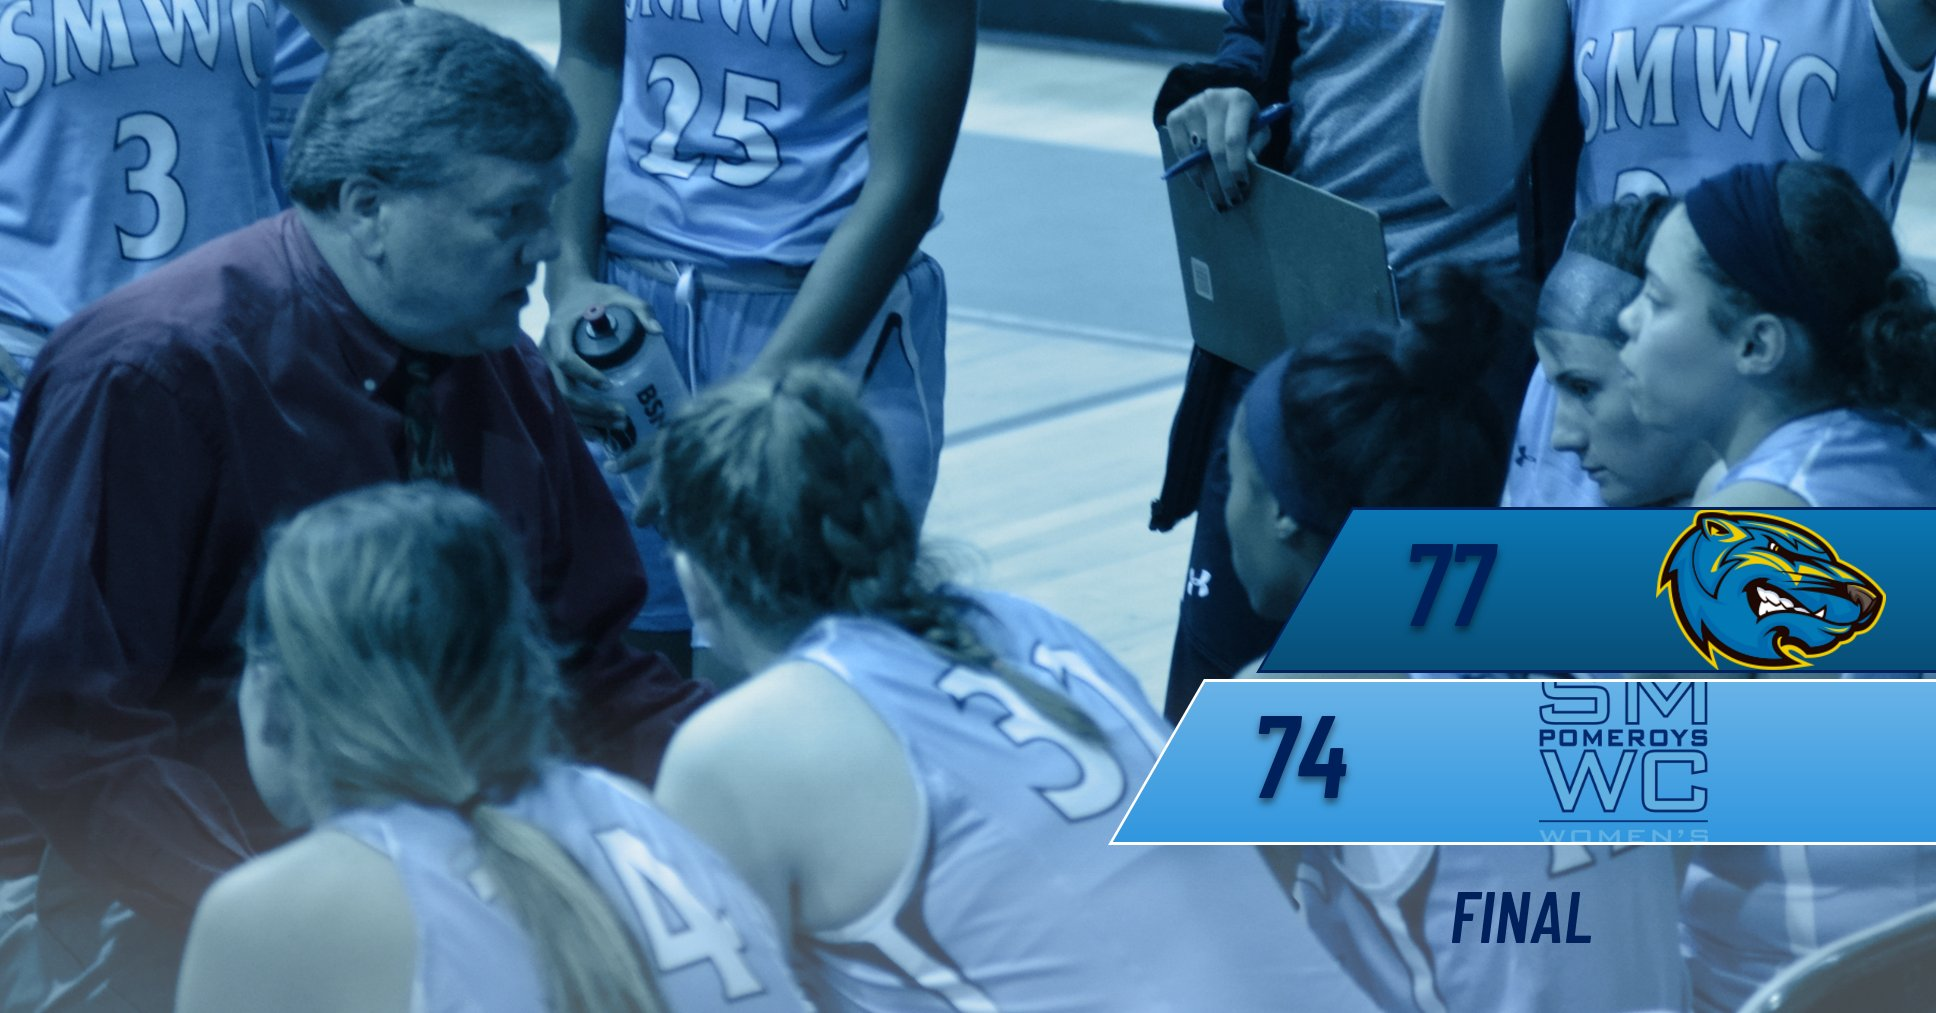 Pomeroys Can't Hold First Half Lead, Lose 74-77 against Brescia